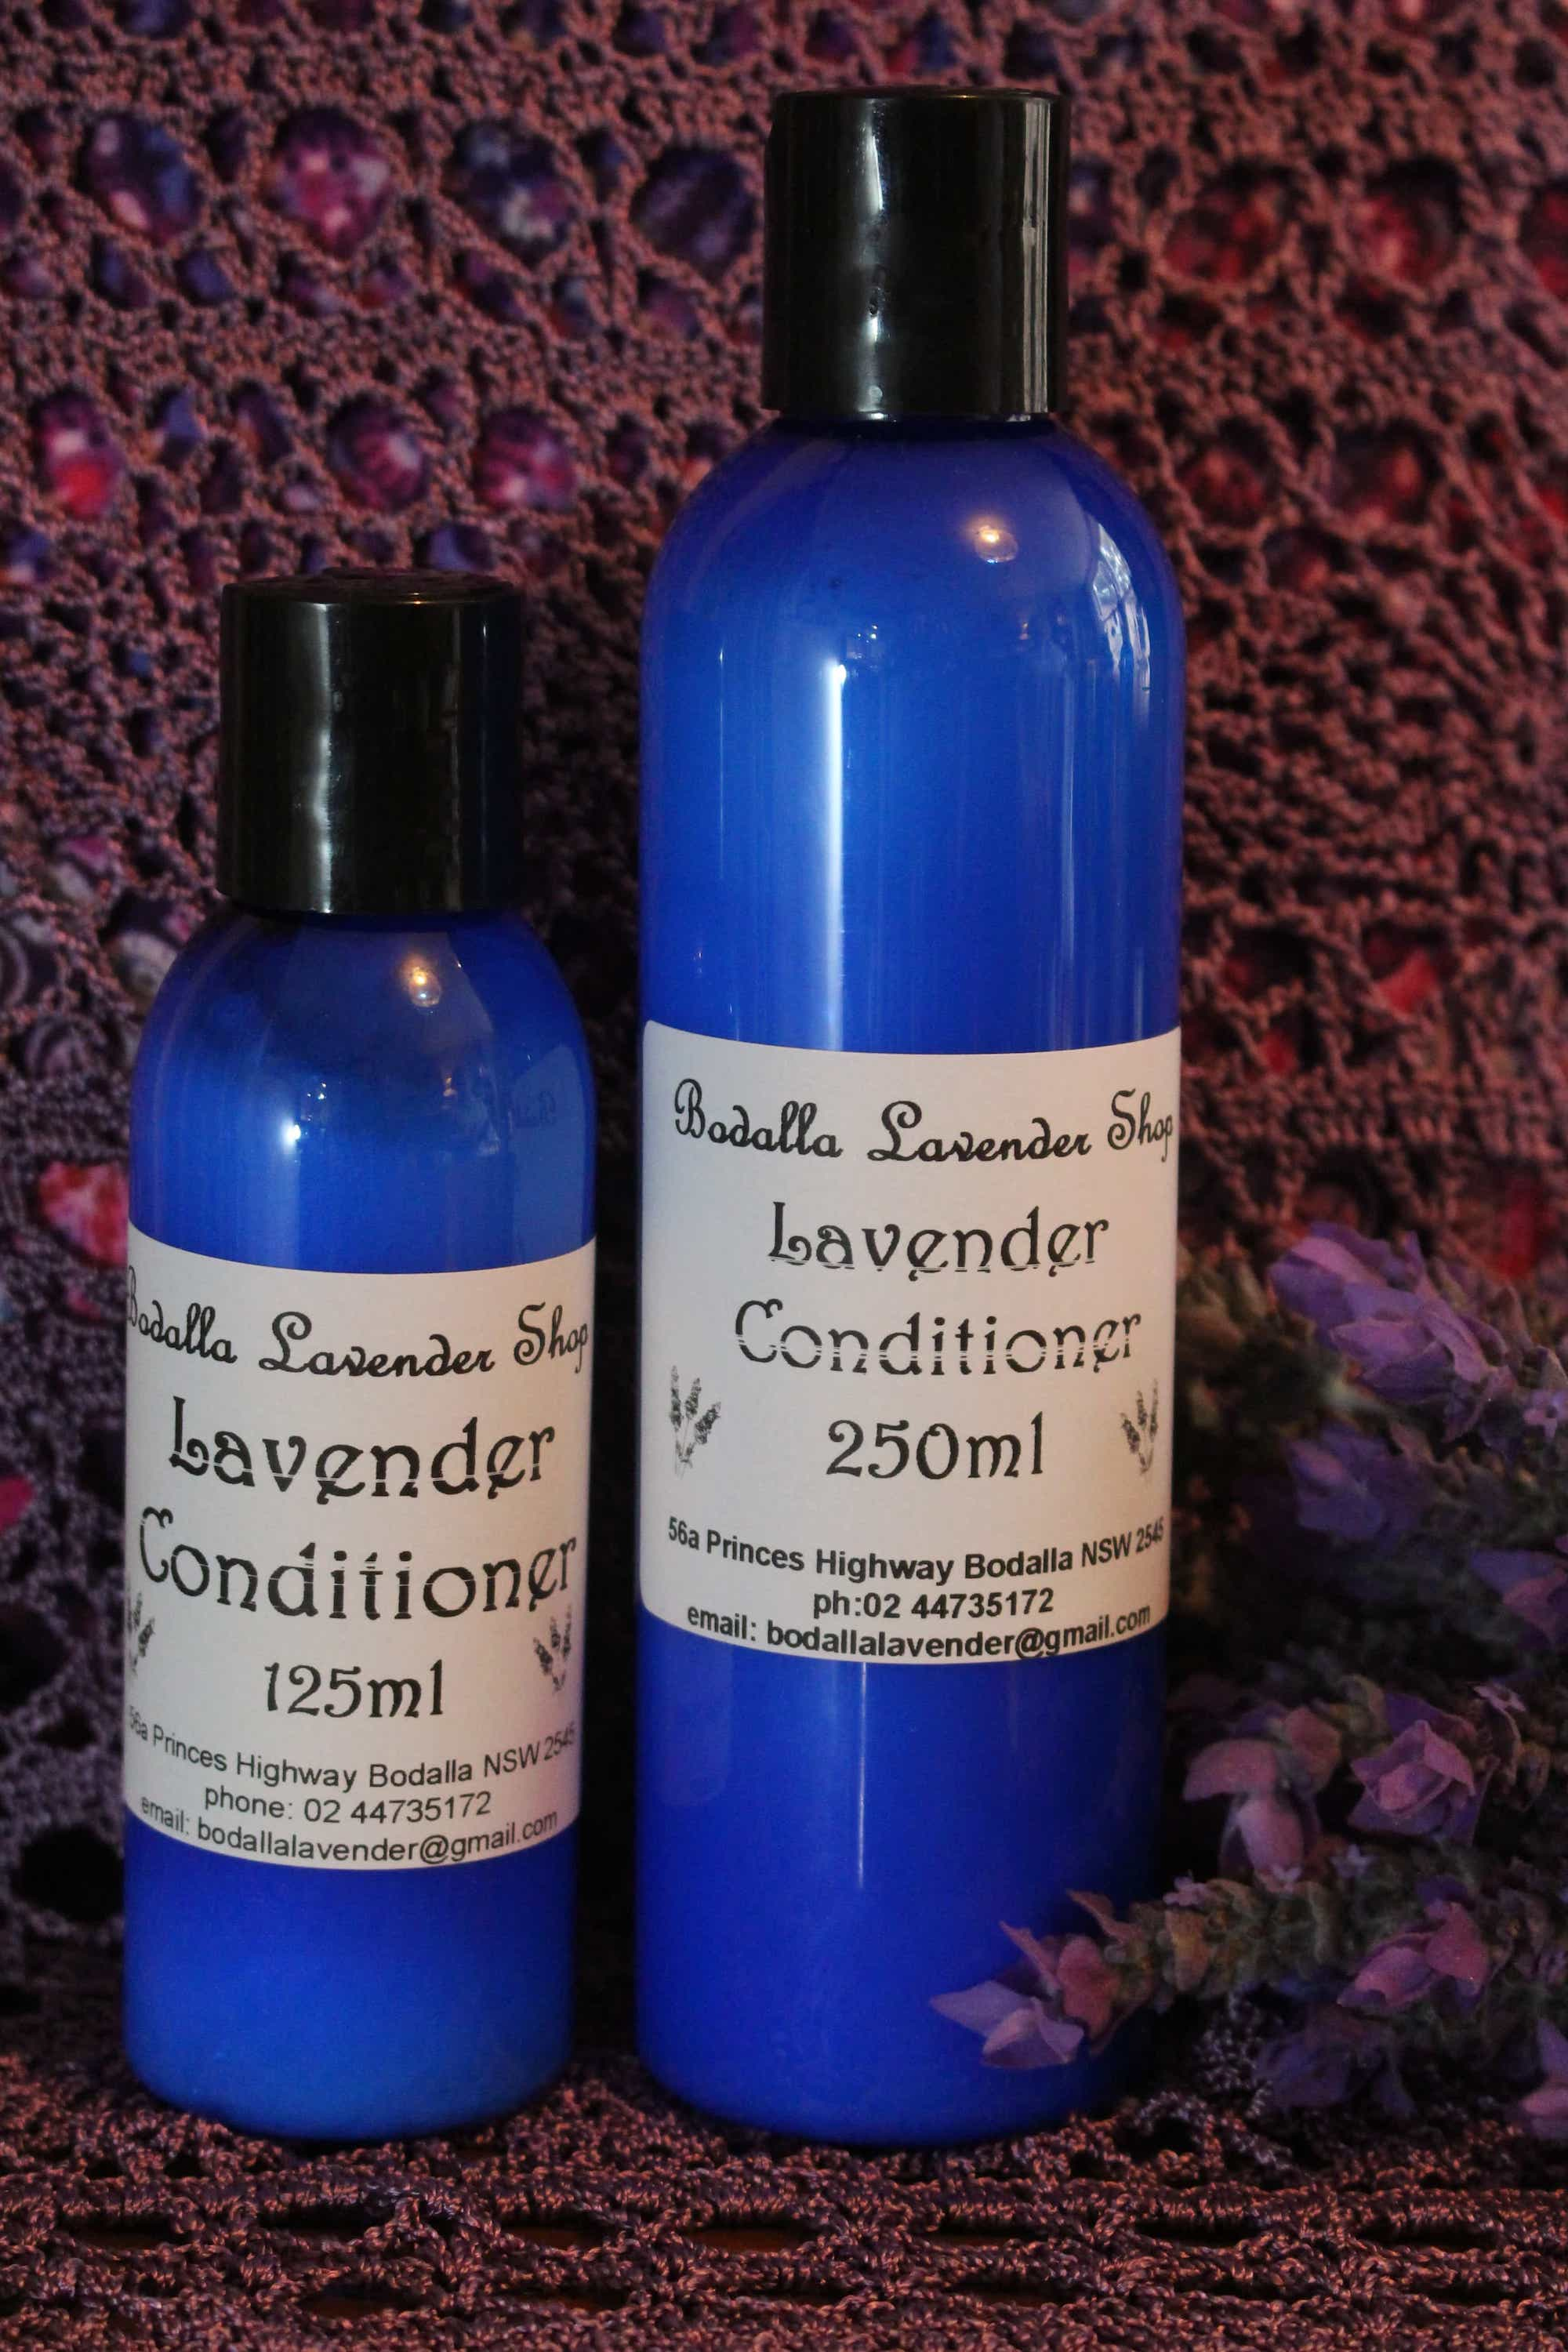 Photograph of an Lavender Conditioner 125ml product